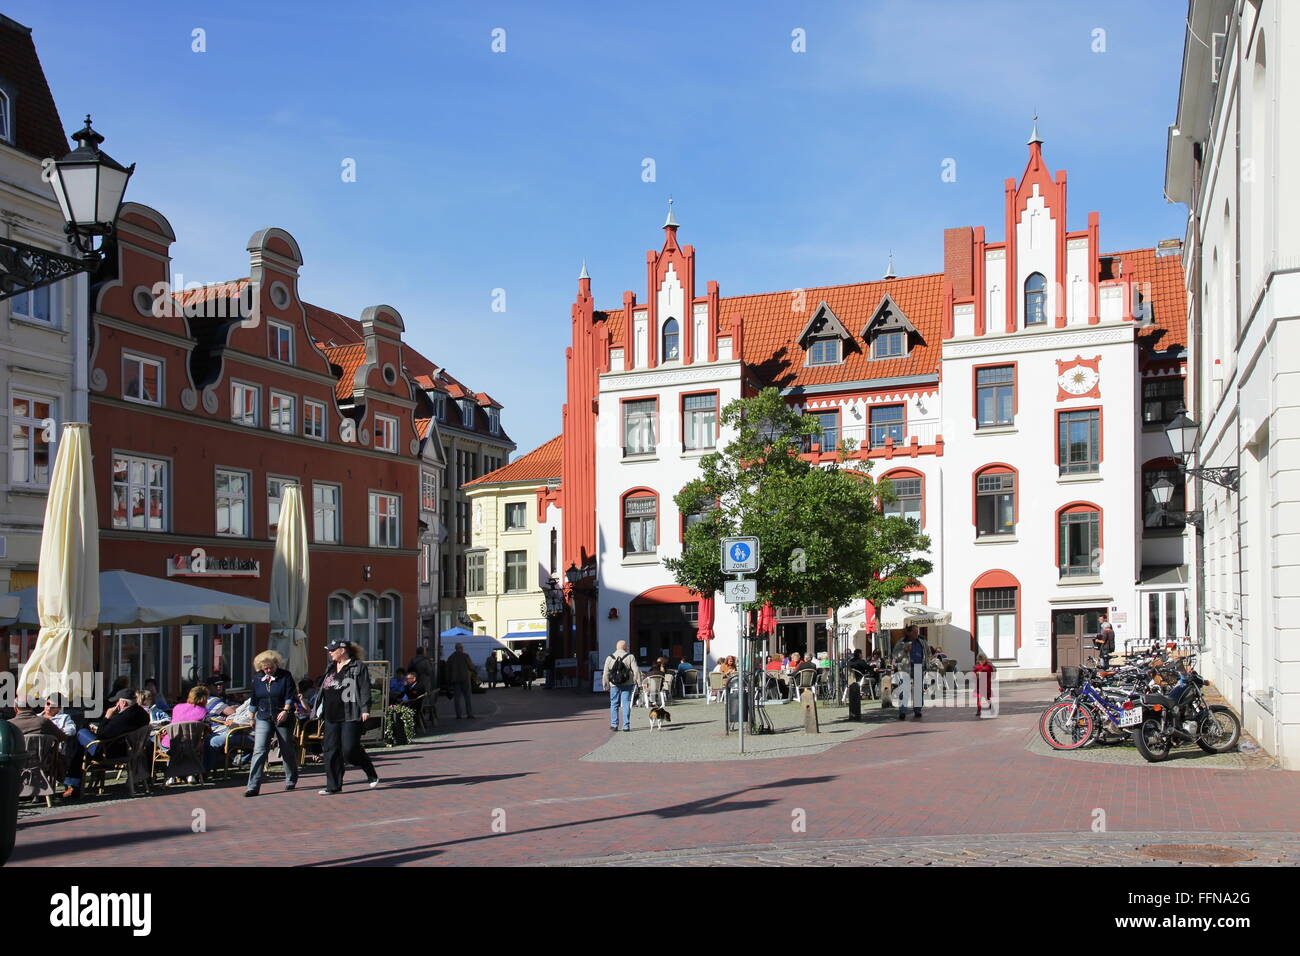 geography / travel, Germany, Mecklenburg-West Pomerania, Wismar, Am Markt, market-place, Additional-Rights-Clearance - Stock Image